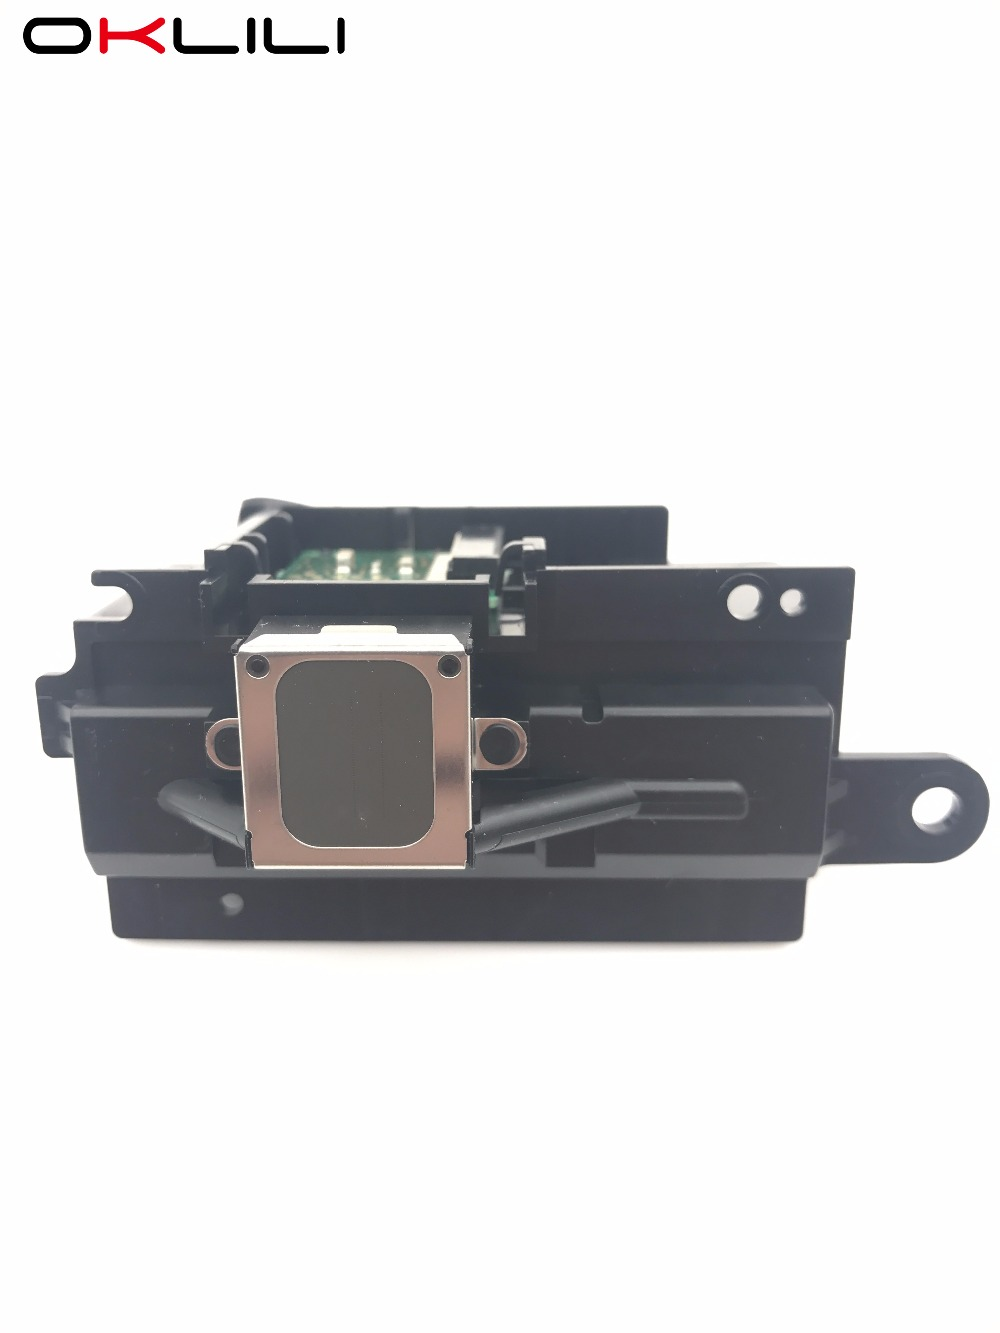 ORIGINAL NEW F080010 F080000 F08001 F080 F08 Printhead Printer Print Head for Epson Stylus Color 480 580 480SXU 480 SXU original new print head for epson l120 l210 l220 l300 l335 l350 l355 l365 l381 l455 l550 l555 l551 xp300 xp400 xp405 printhead